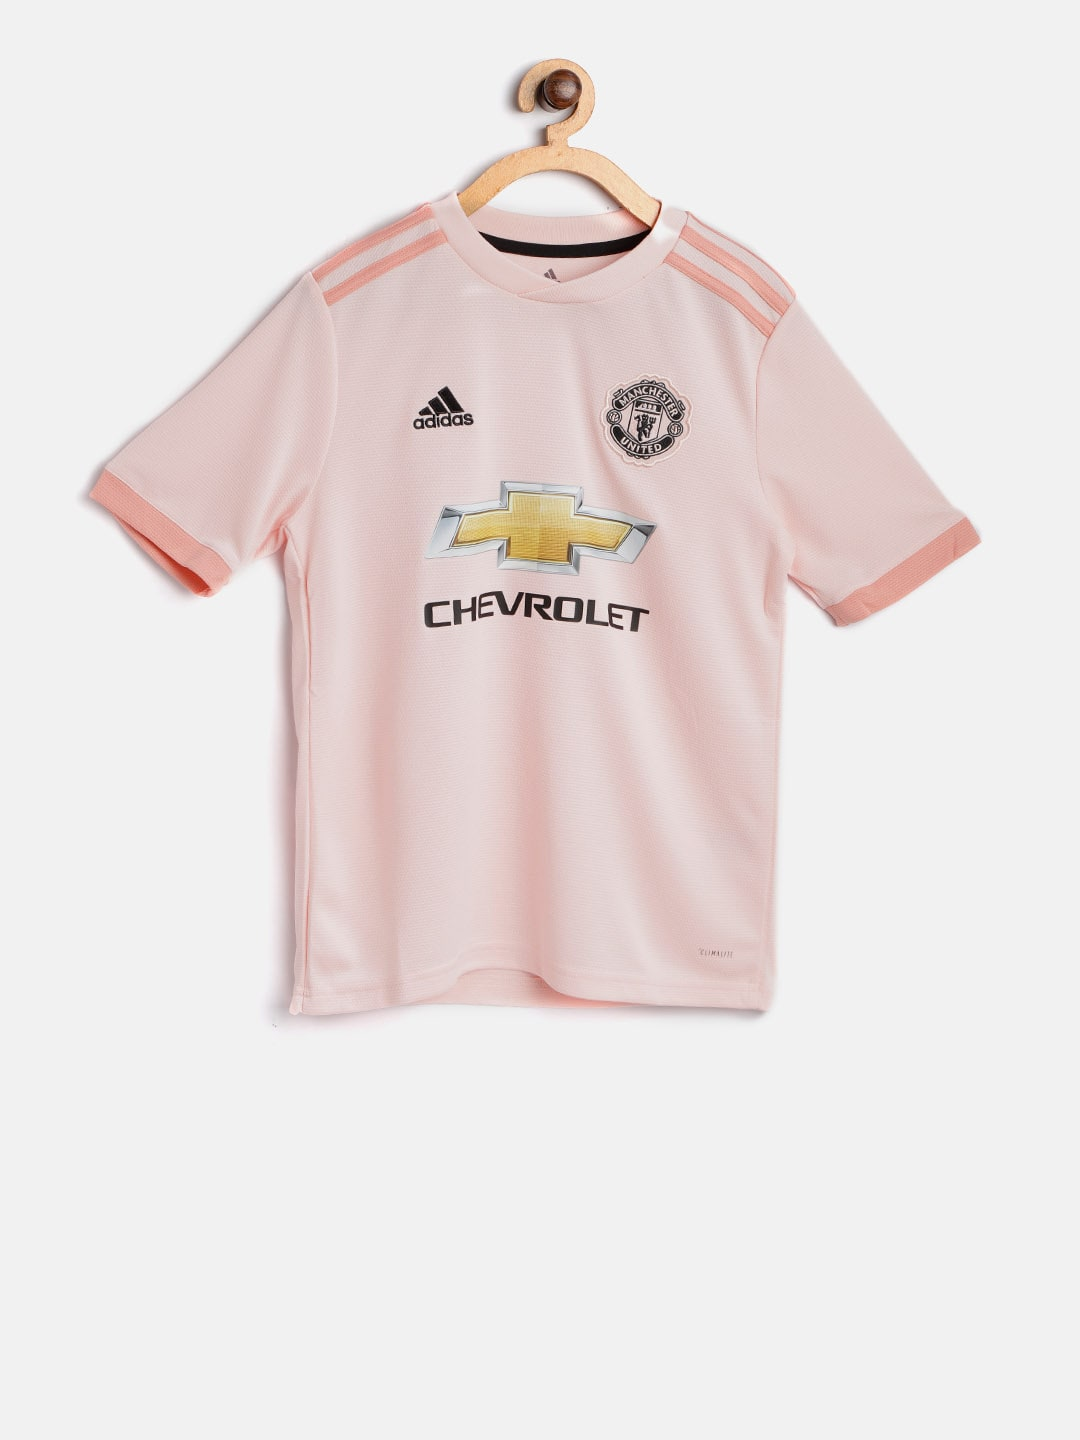 online store 40c0d c2e18 Adidas T-Shirts - Buy Adidas Tshirts Online in India   Myntra